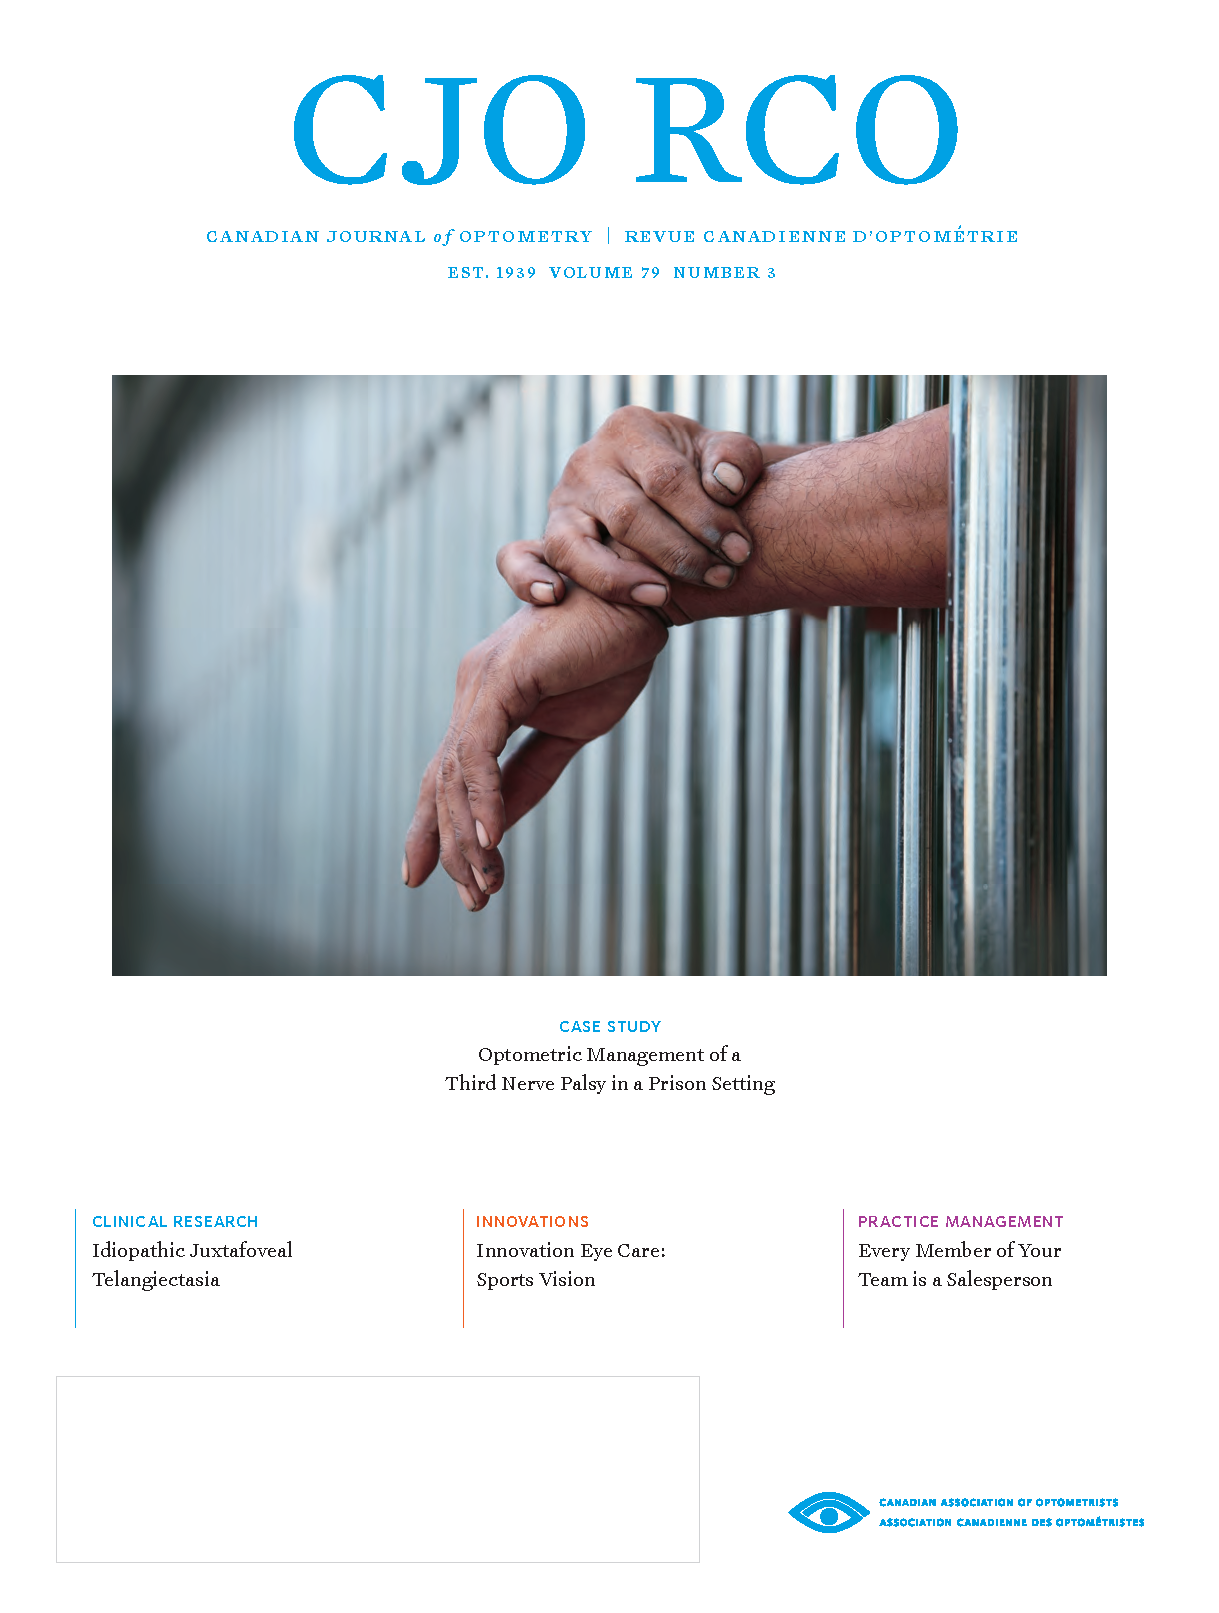 Cover of CJO Volume 79 Number 3, showing hands sticking out from behind prison bars